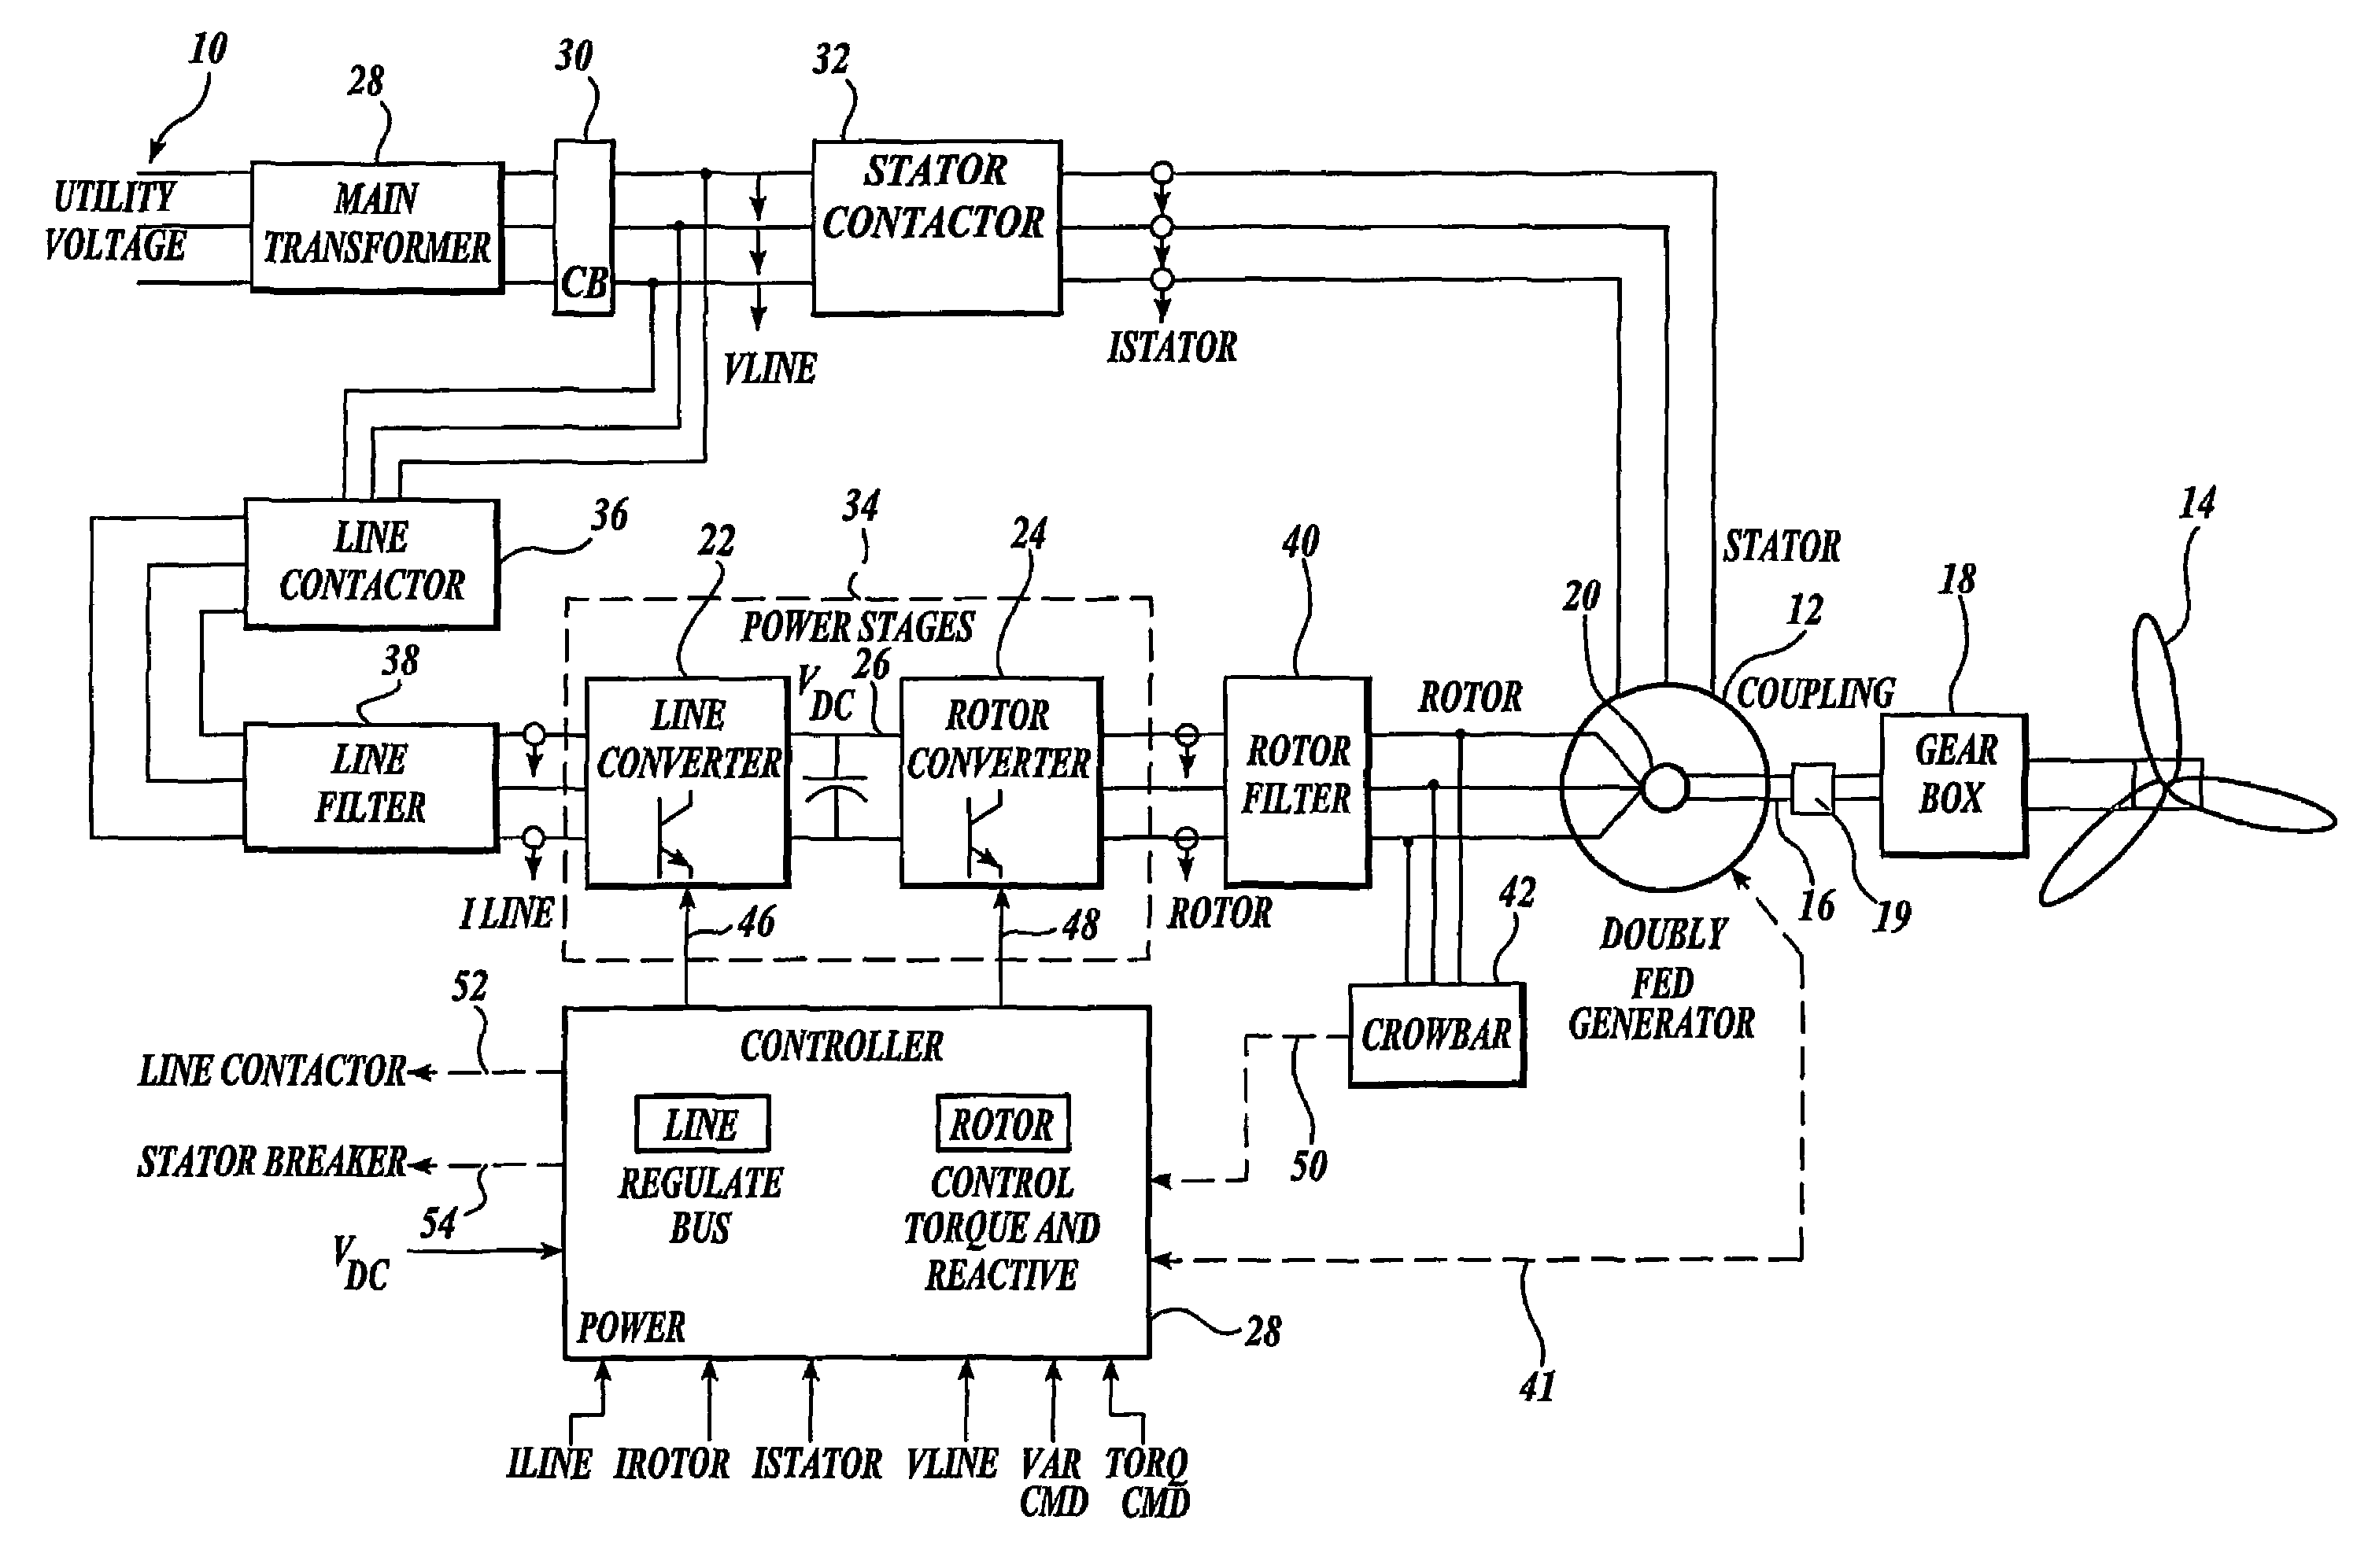 Patent Us7411309 - Control System For Doubly Fed Induction Generator